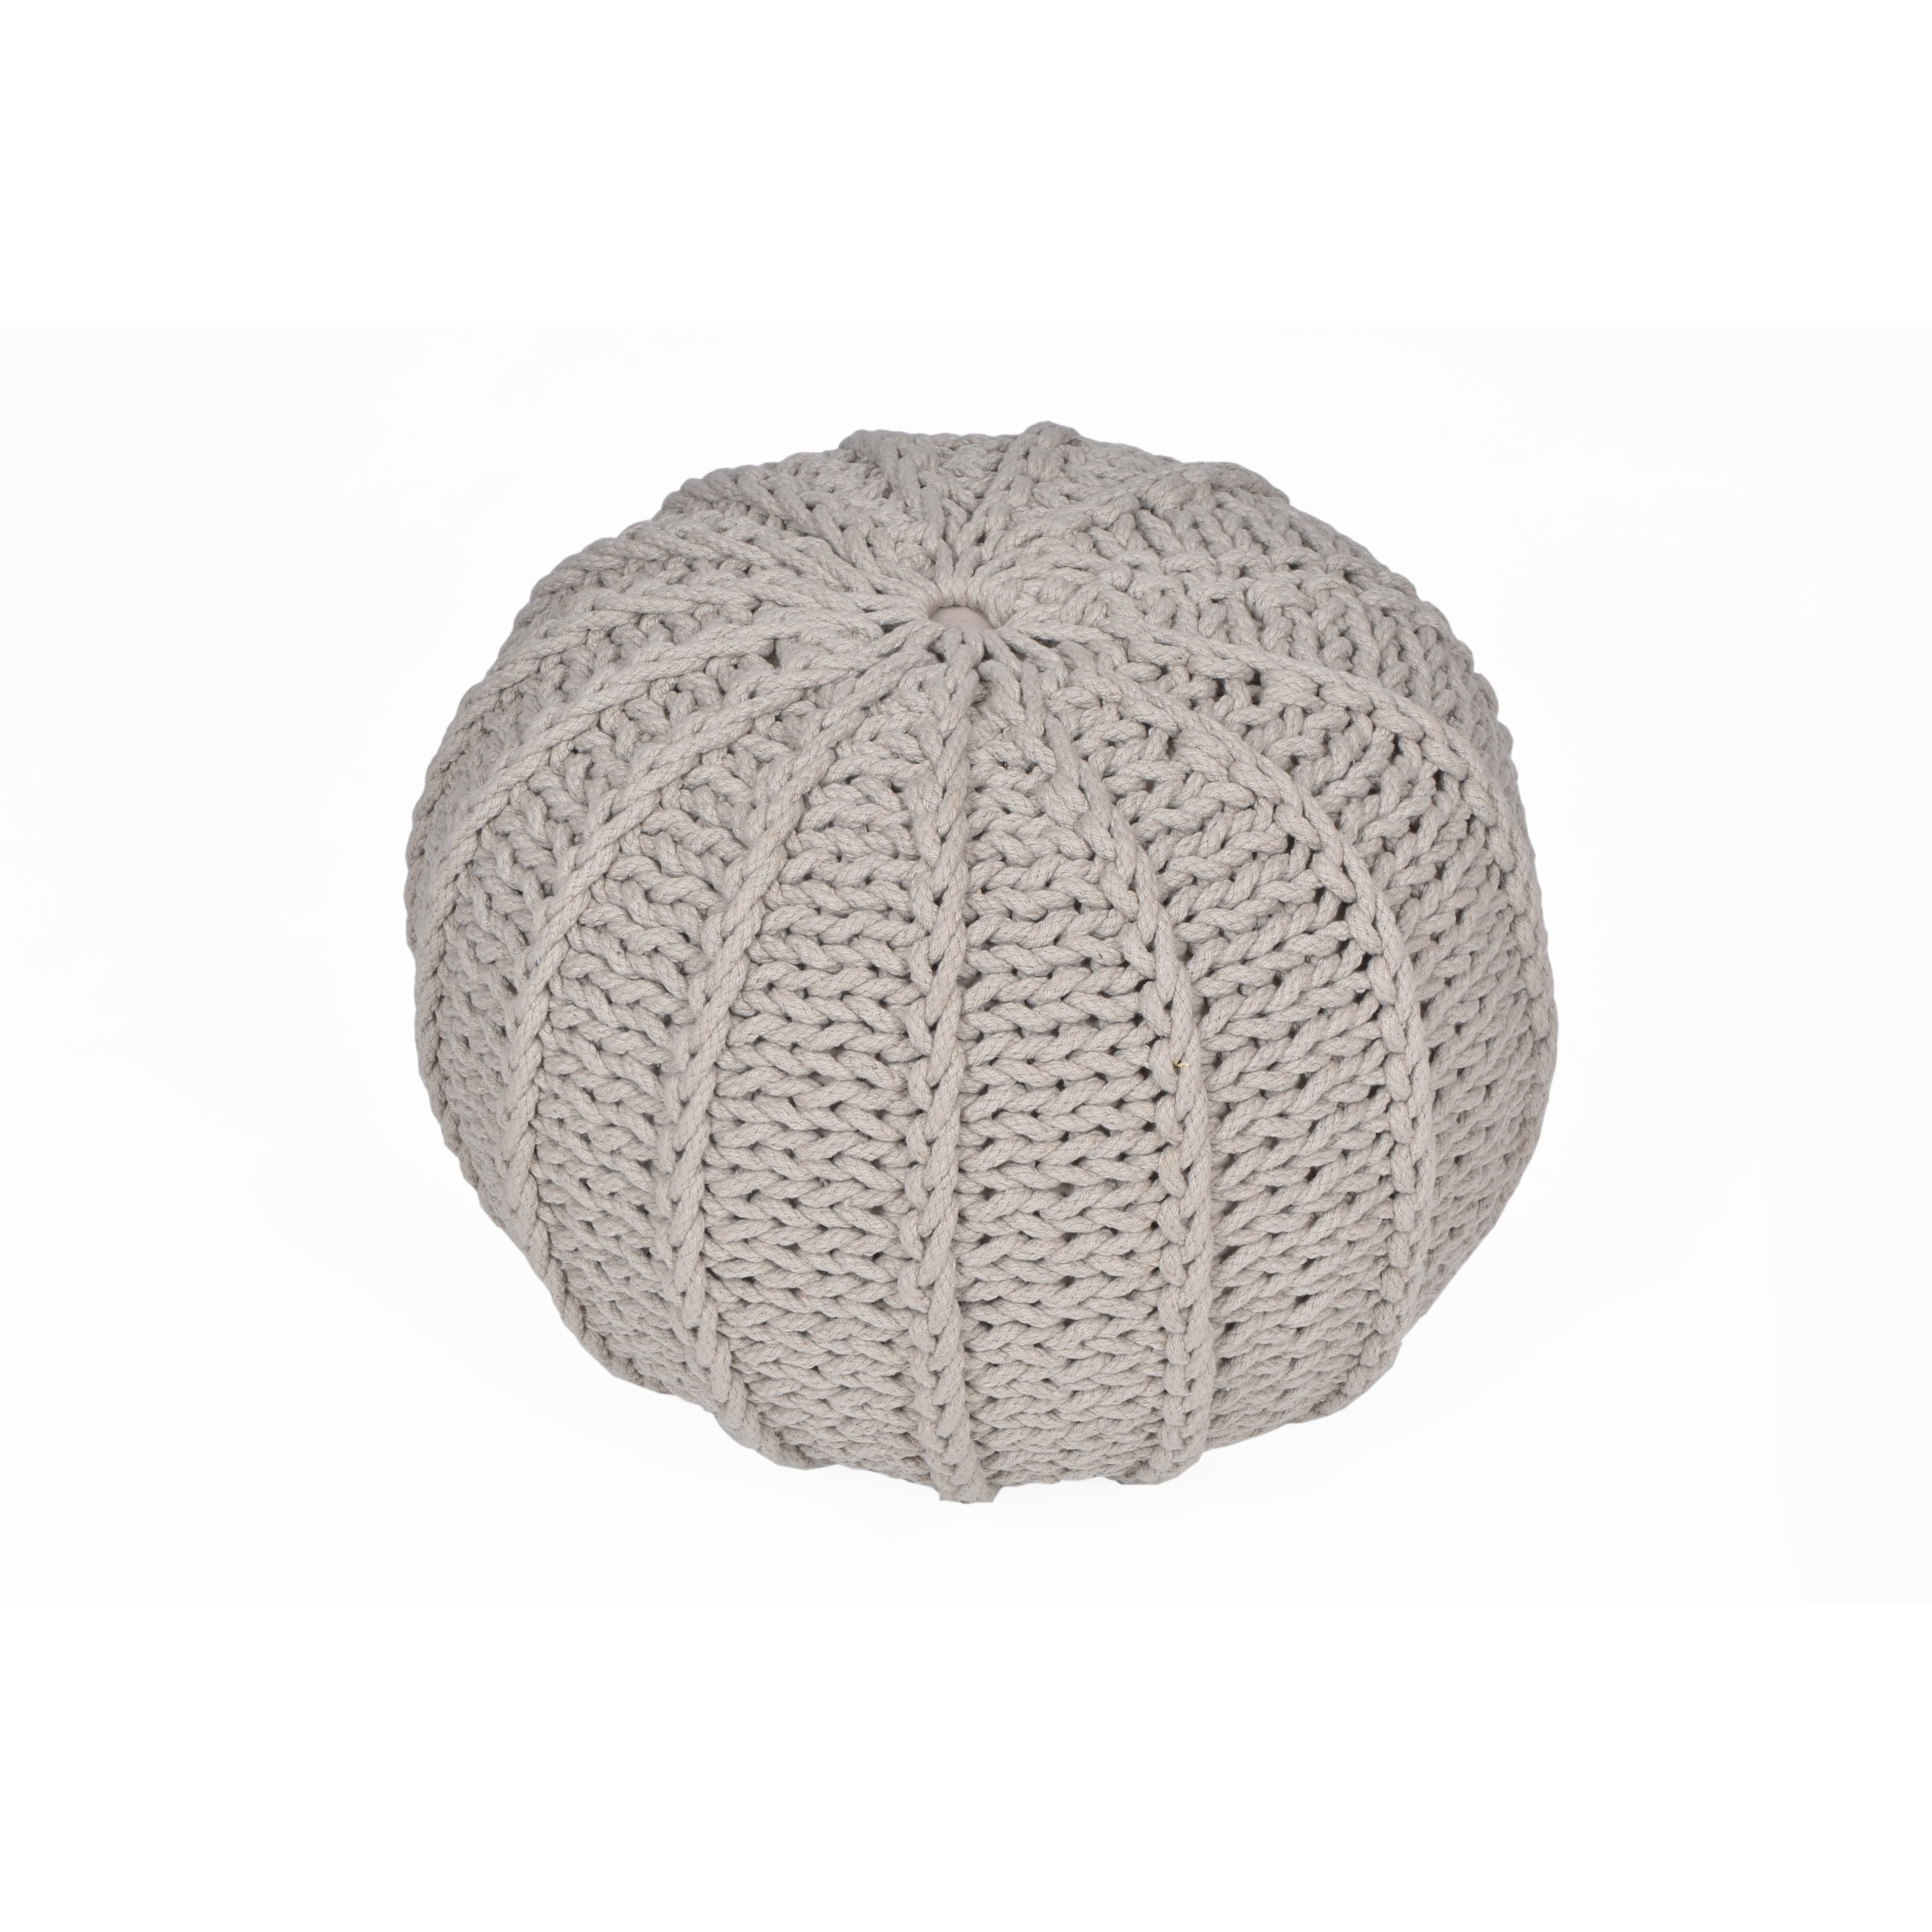 VCNY Cable Knitted Round Pouf & Reviews Wayfair